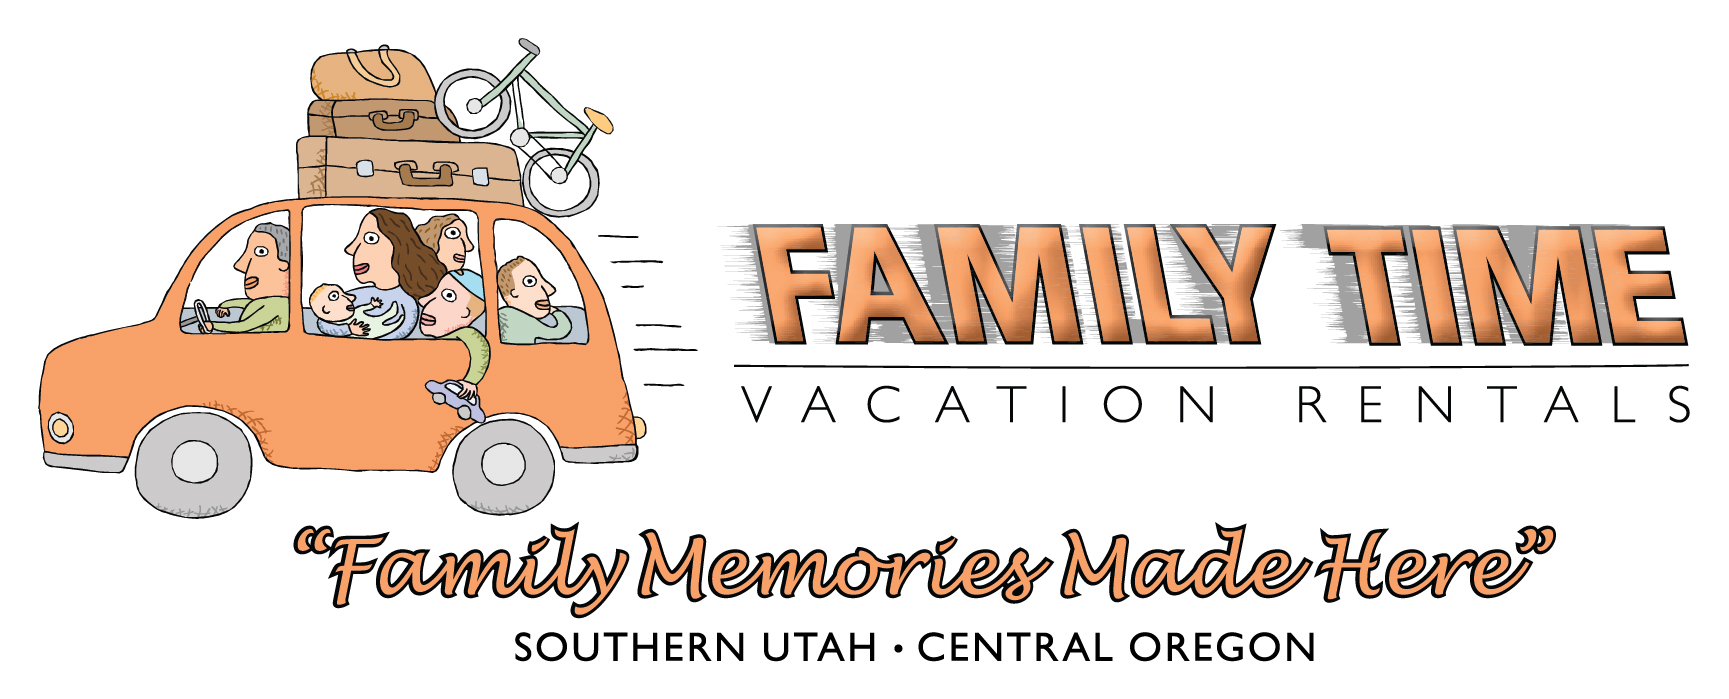 Family Time Vacation Rentals Logo_Locations-01